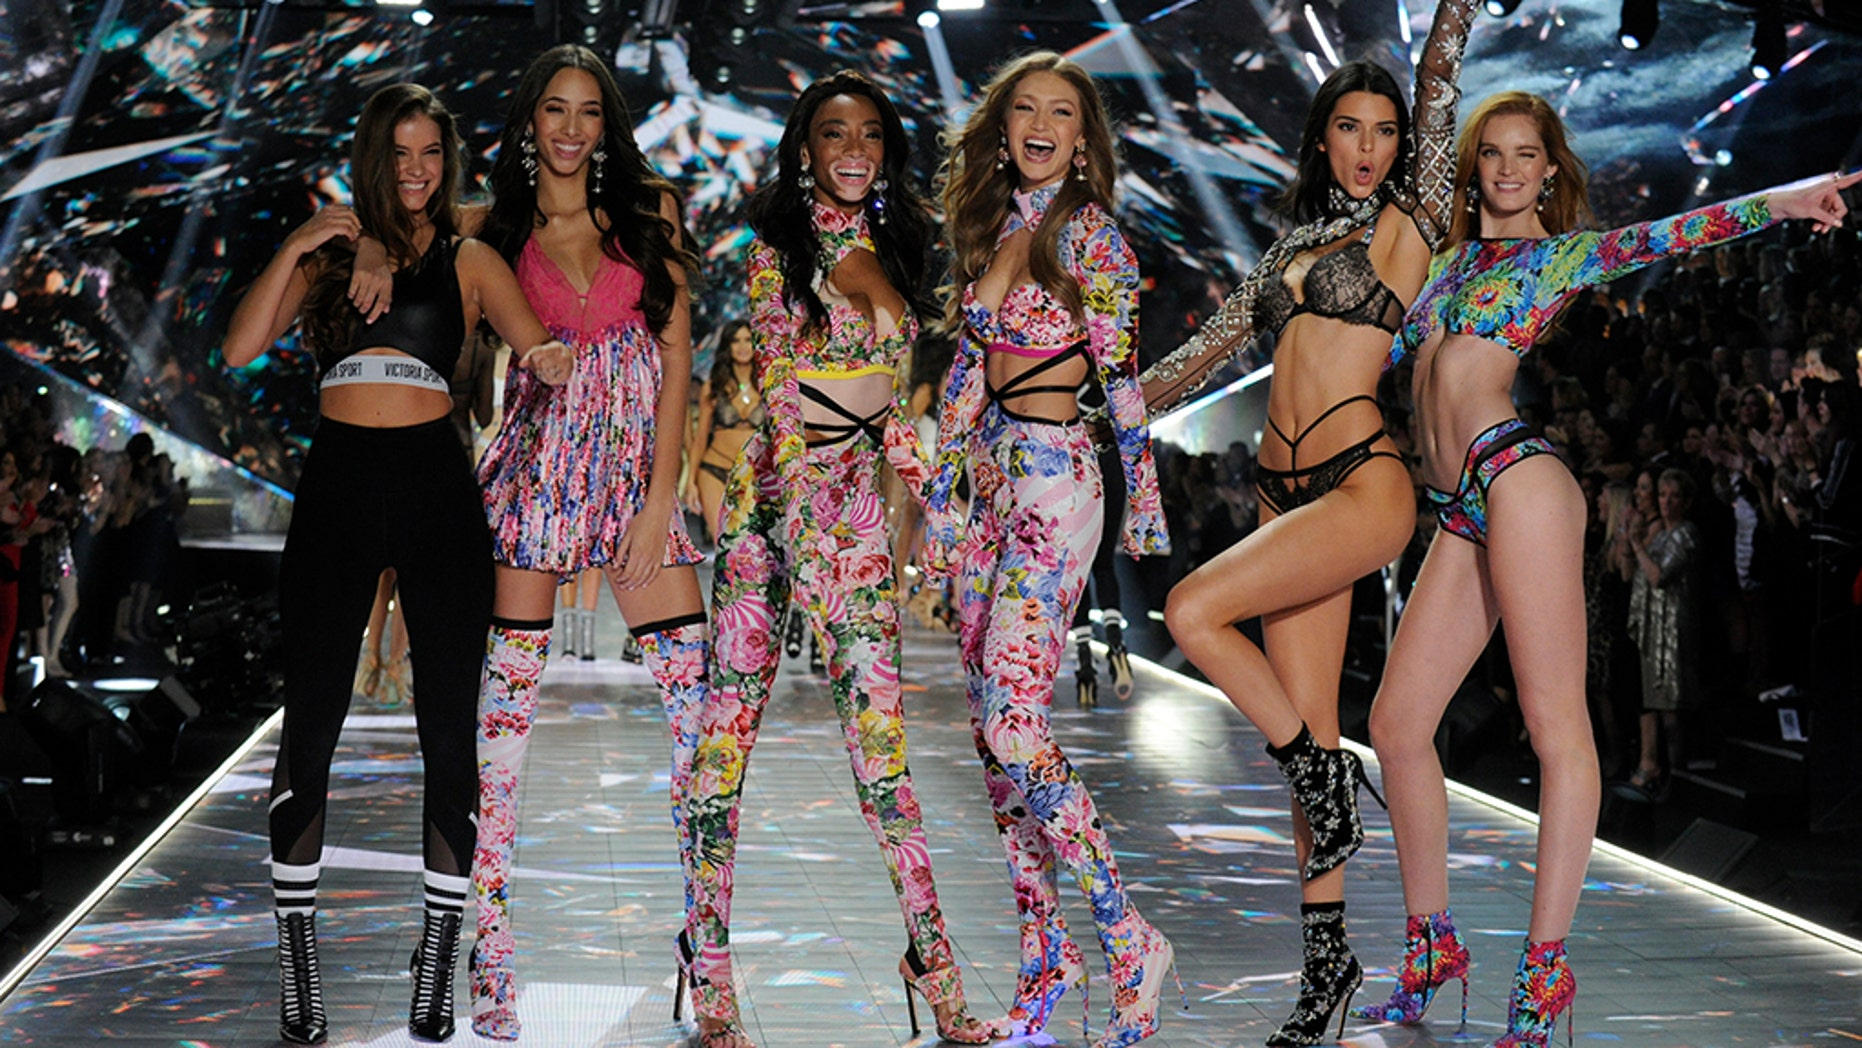 Victoria S Secret Fashion Show Drops To Lowest Ratings Ever Fox News